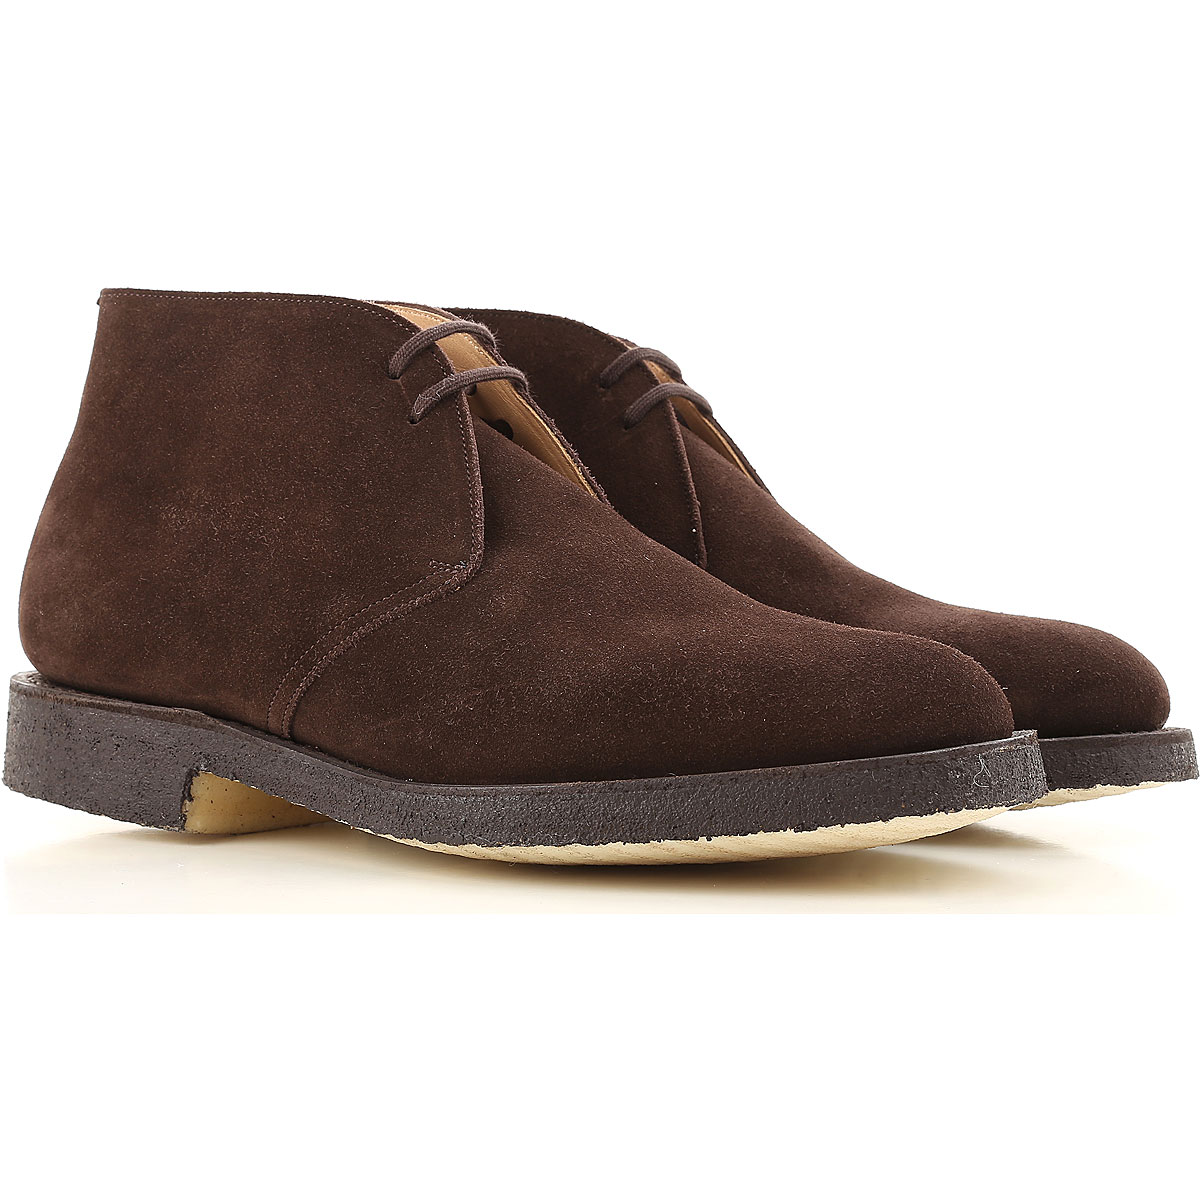 Image of Church's Desert Boots Chukka for Men On Sale in Outlet, Brown, Suede leather, 2017, 11 7 7.5